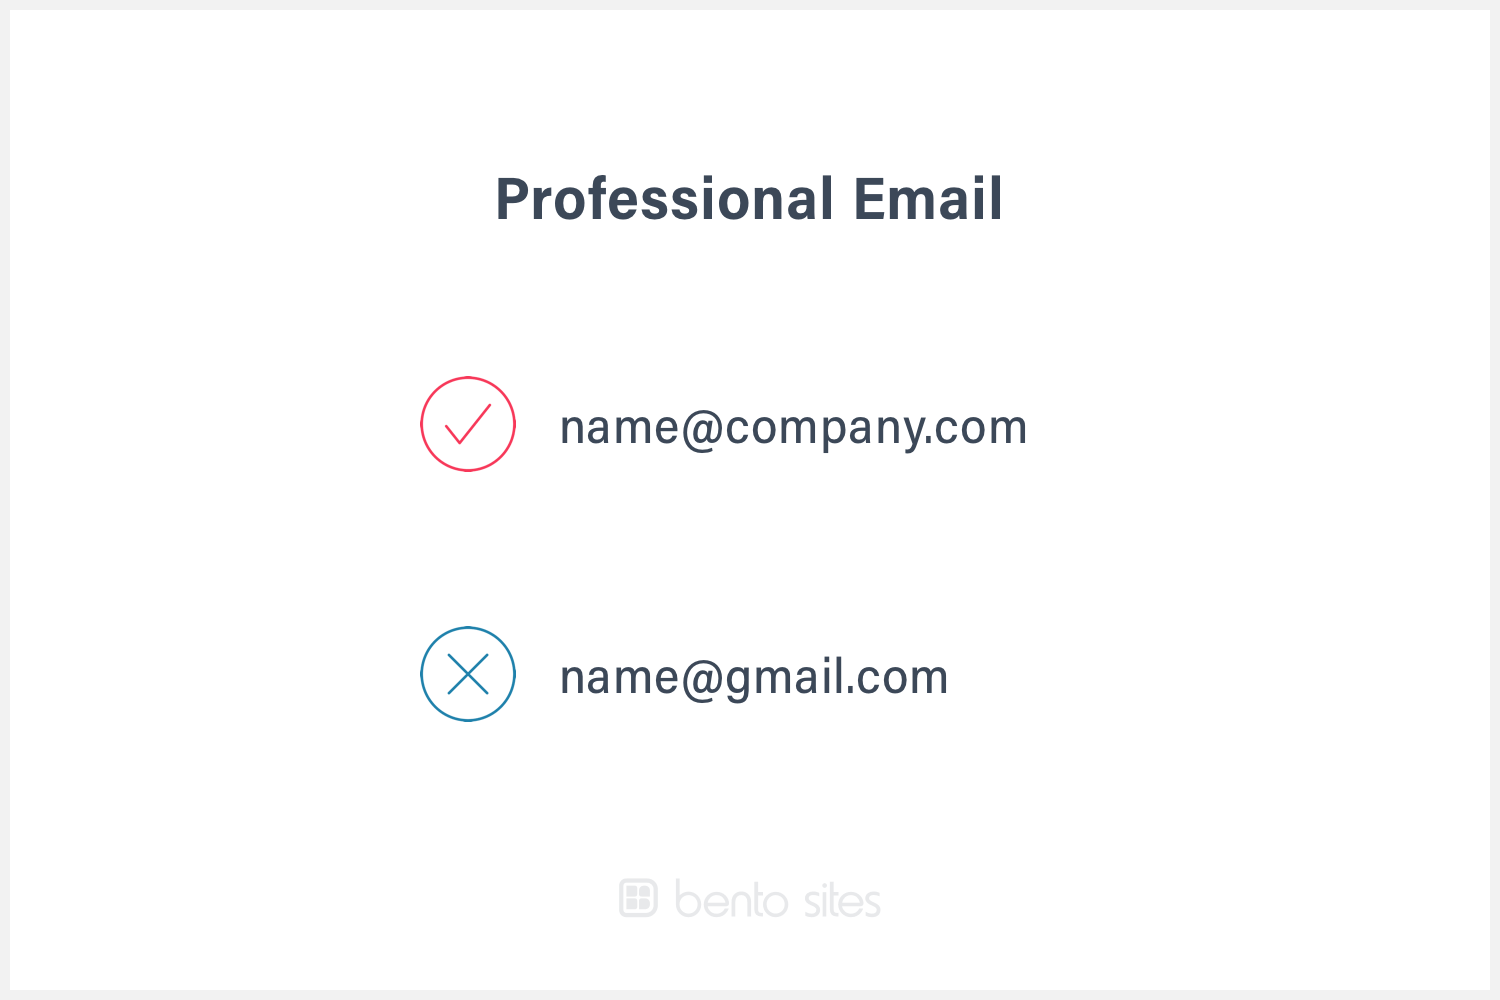 Example of professional email (name@company.com)